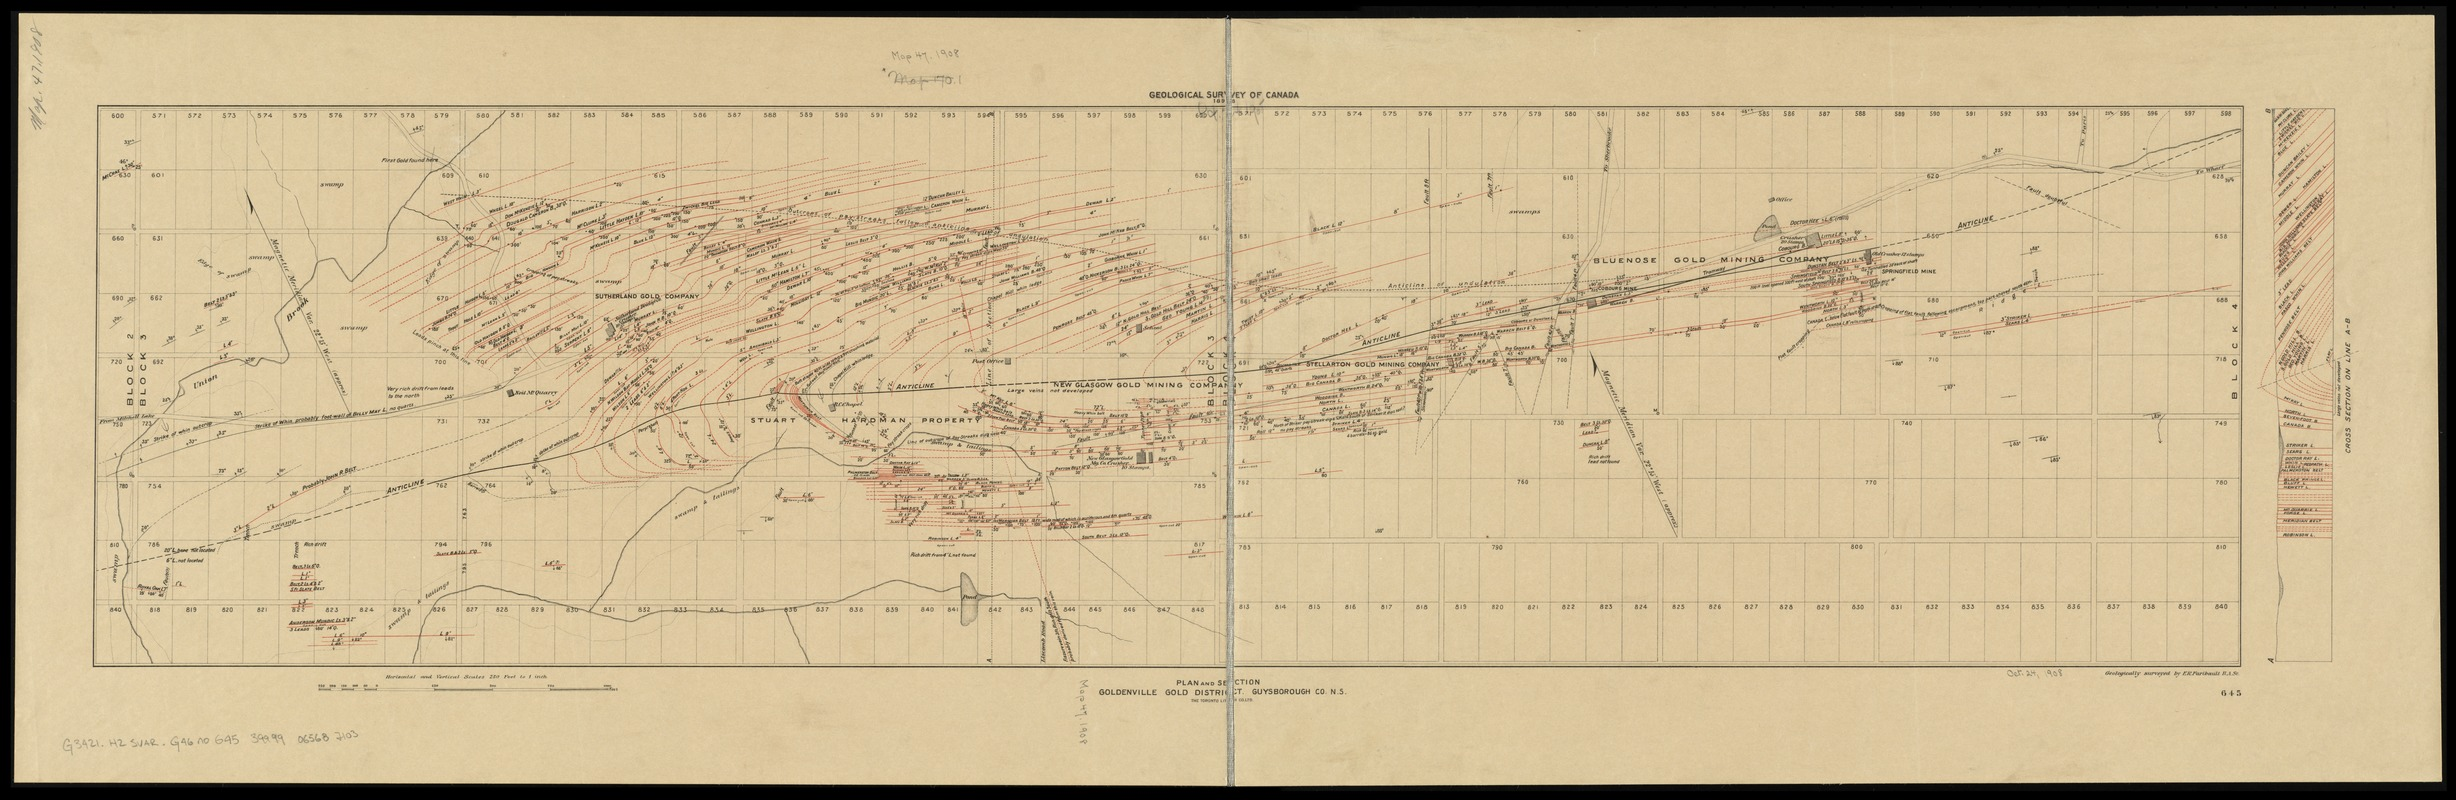 Plan and section, Goldenville gold district, Guysborough Co., N.S